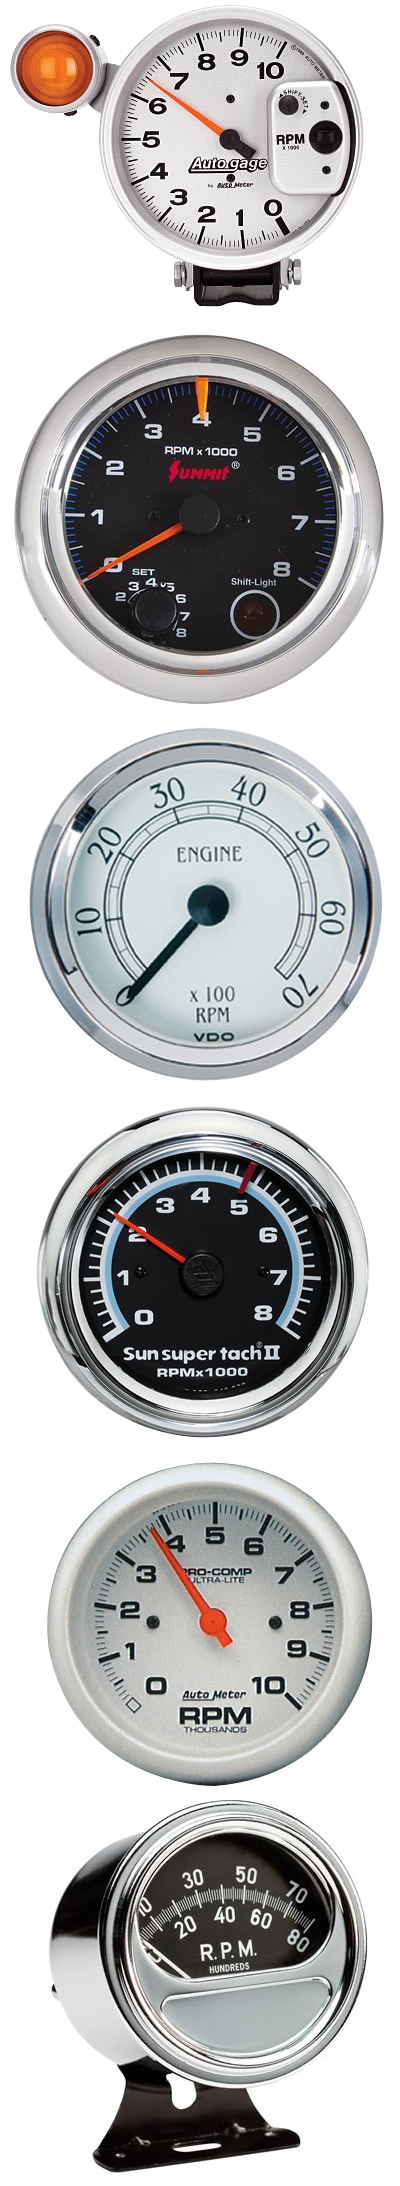 Summit Digital Meters : Keep track of your rpms with tachometers from auto meter